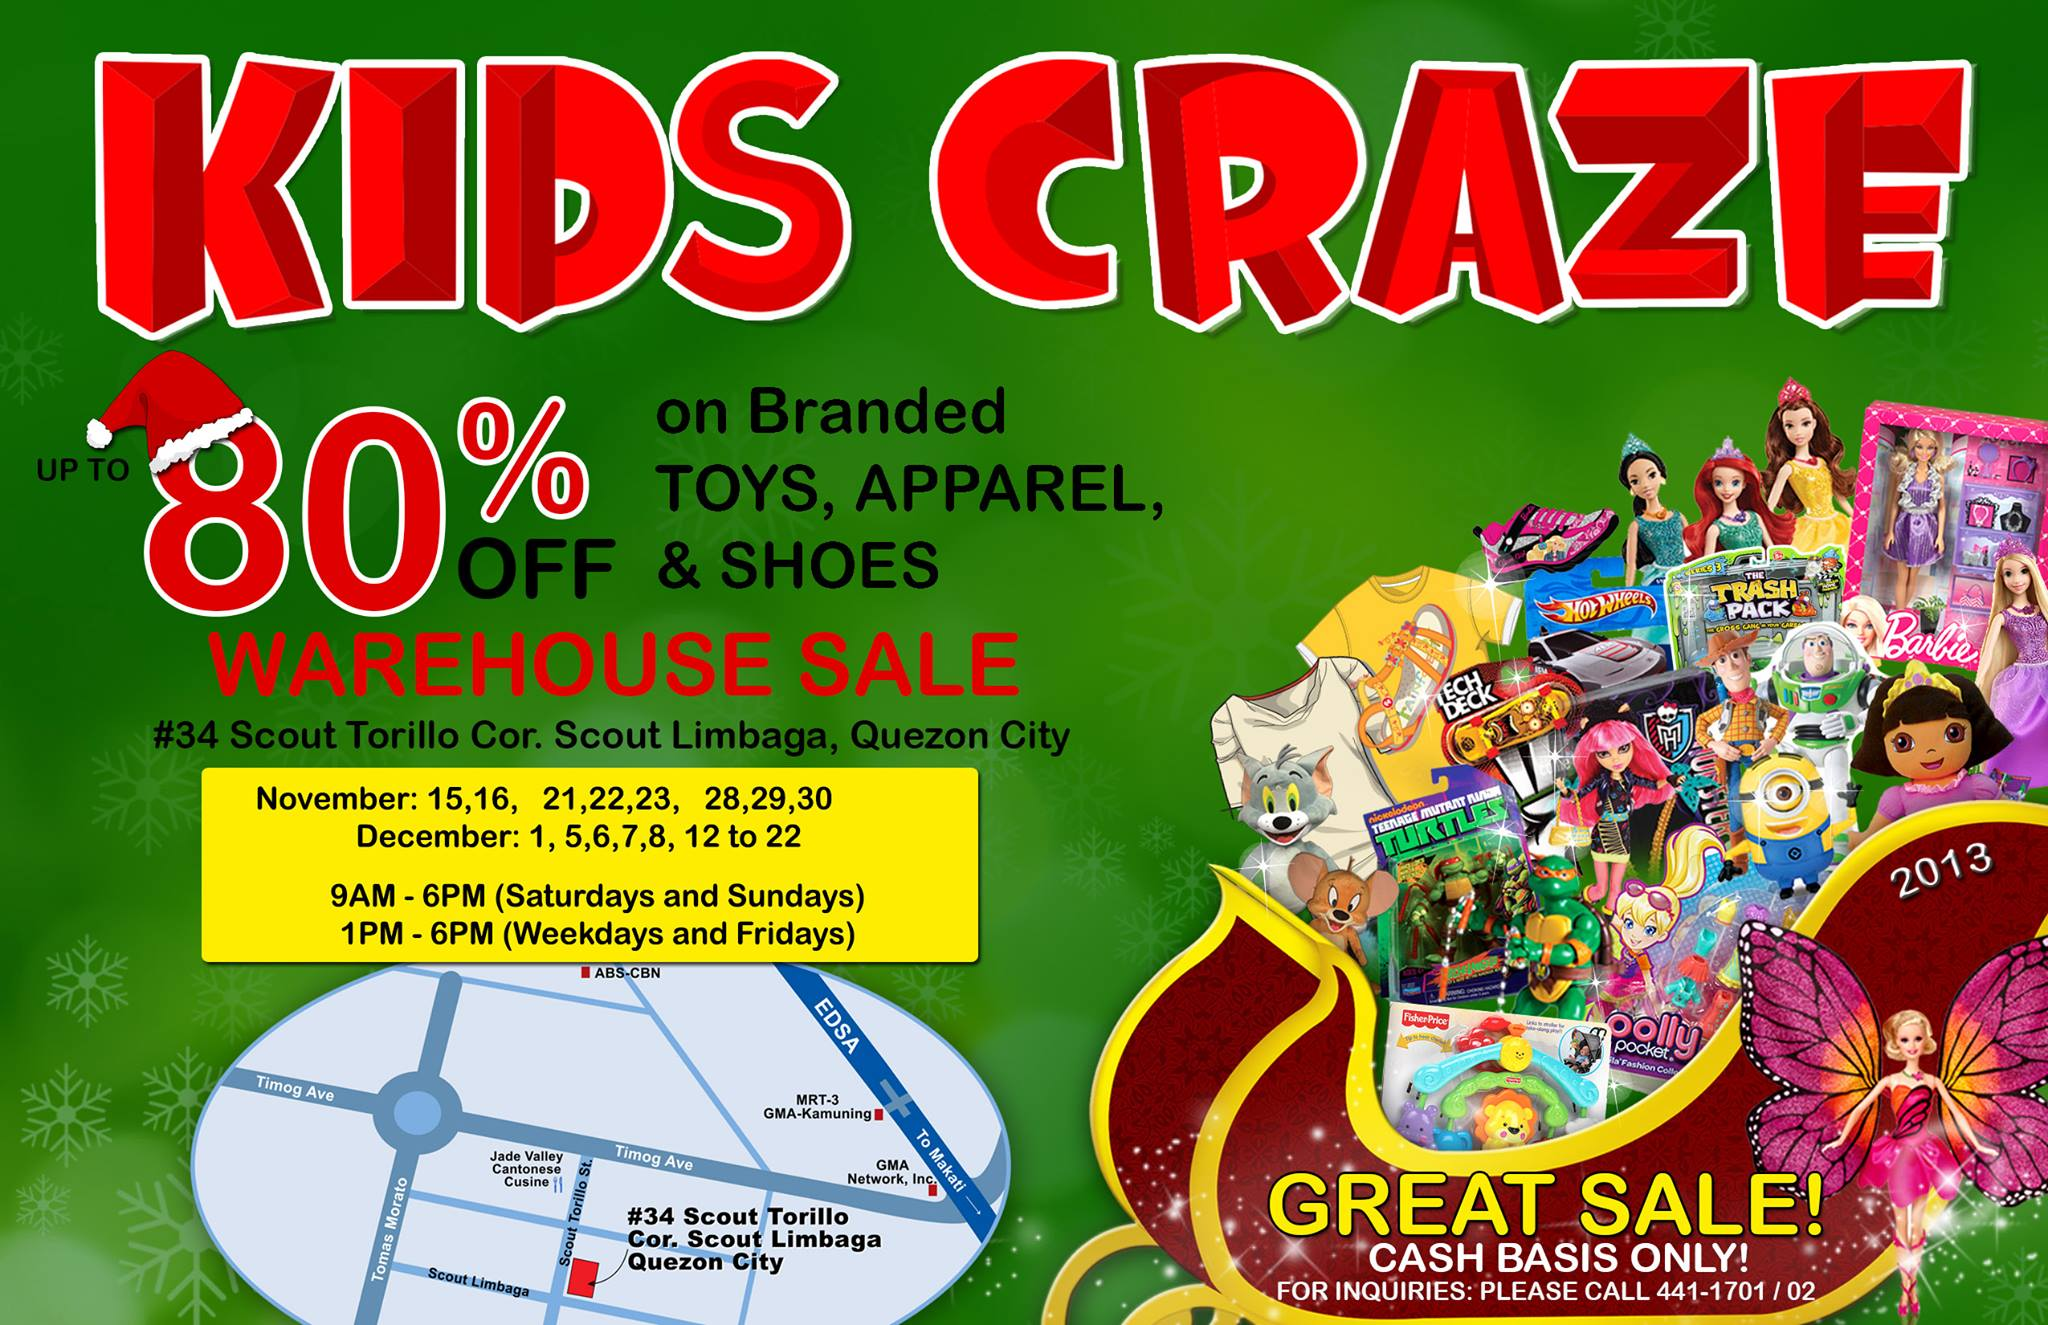 Kids Craze Warehouse Sale November - December 2013